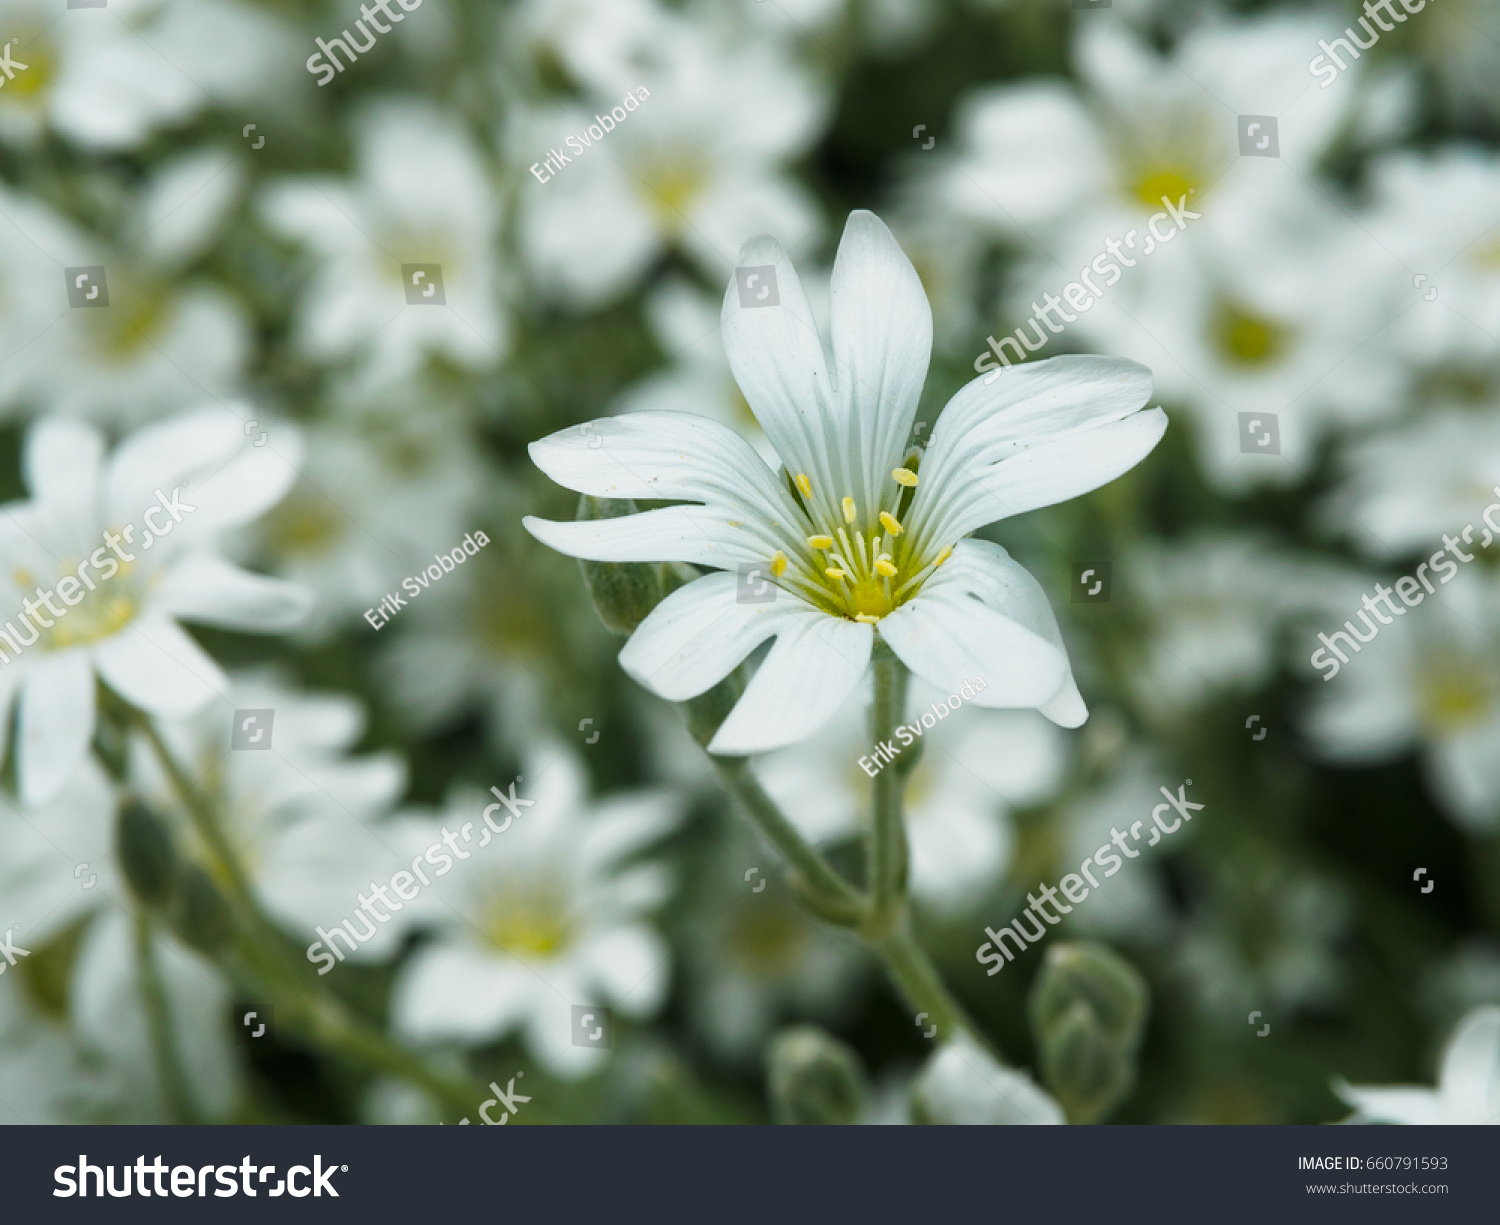 White Flower In Garden Field Of Small White Flowers Shooting With